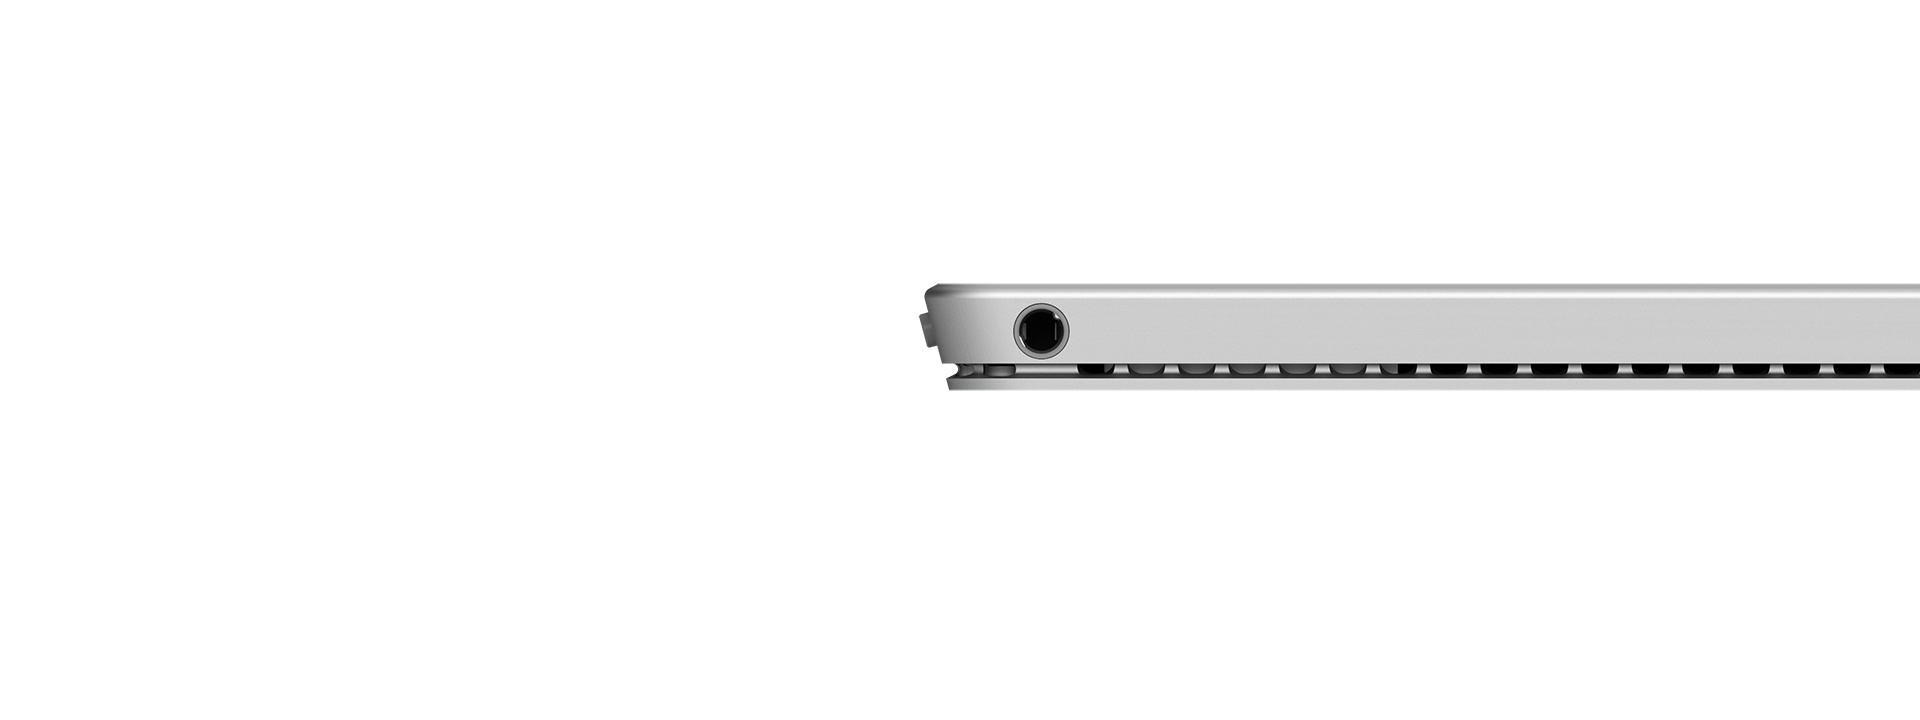 Side profile view of Surface Pro 4